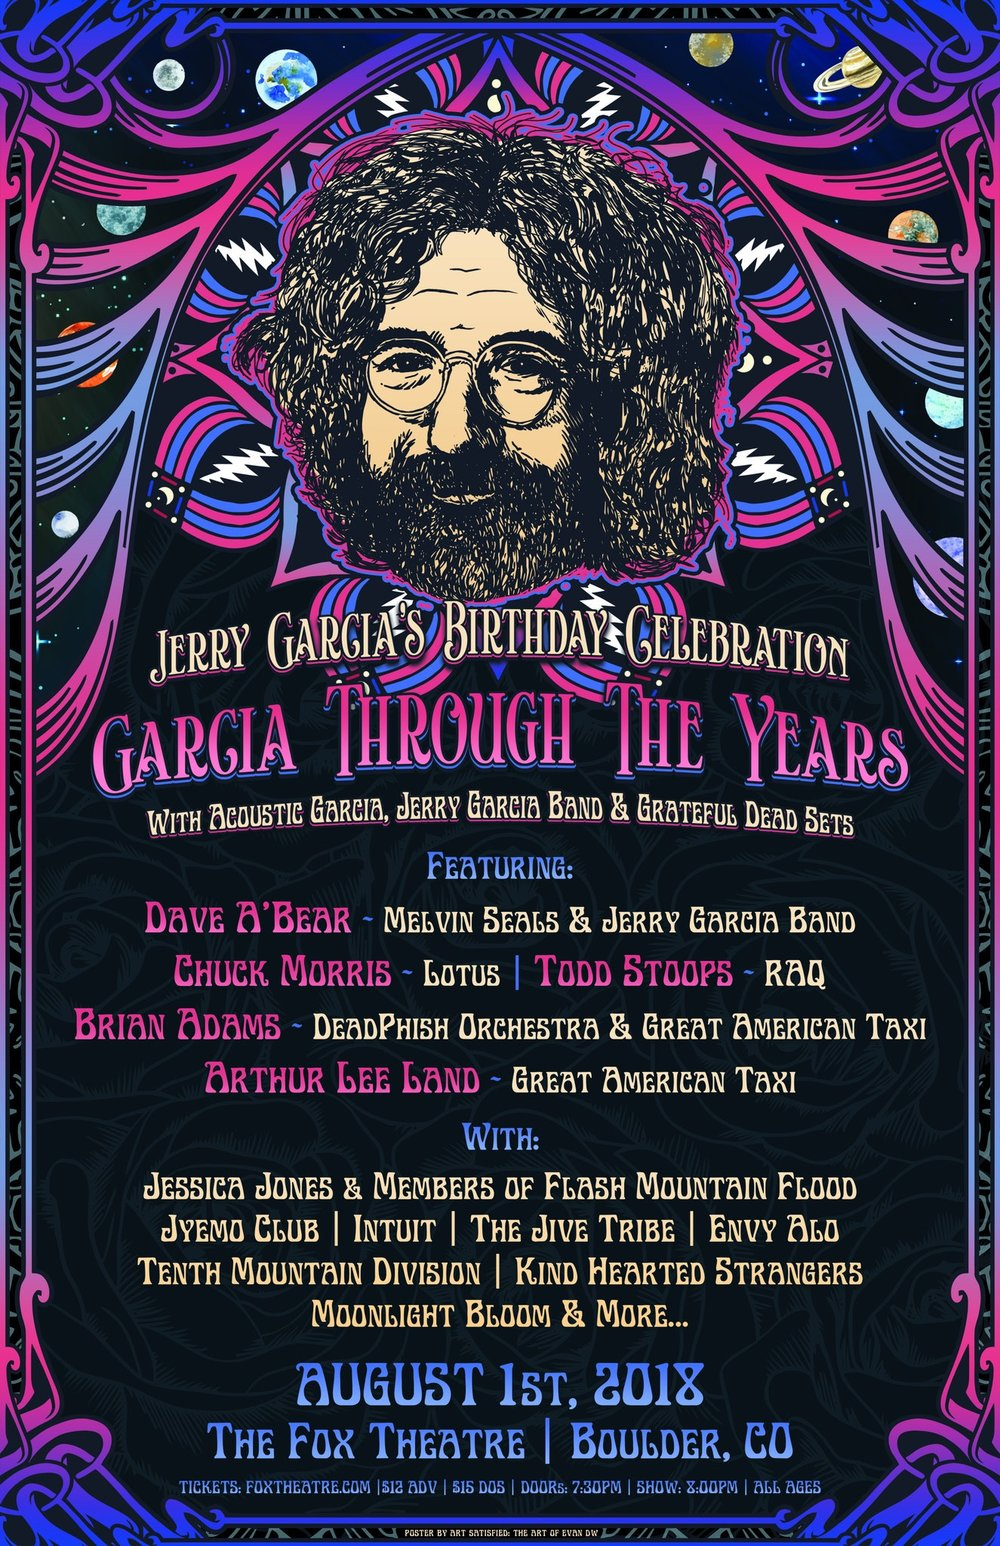 Garcia Through The Years at the Fox Theater